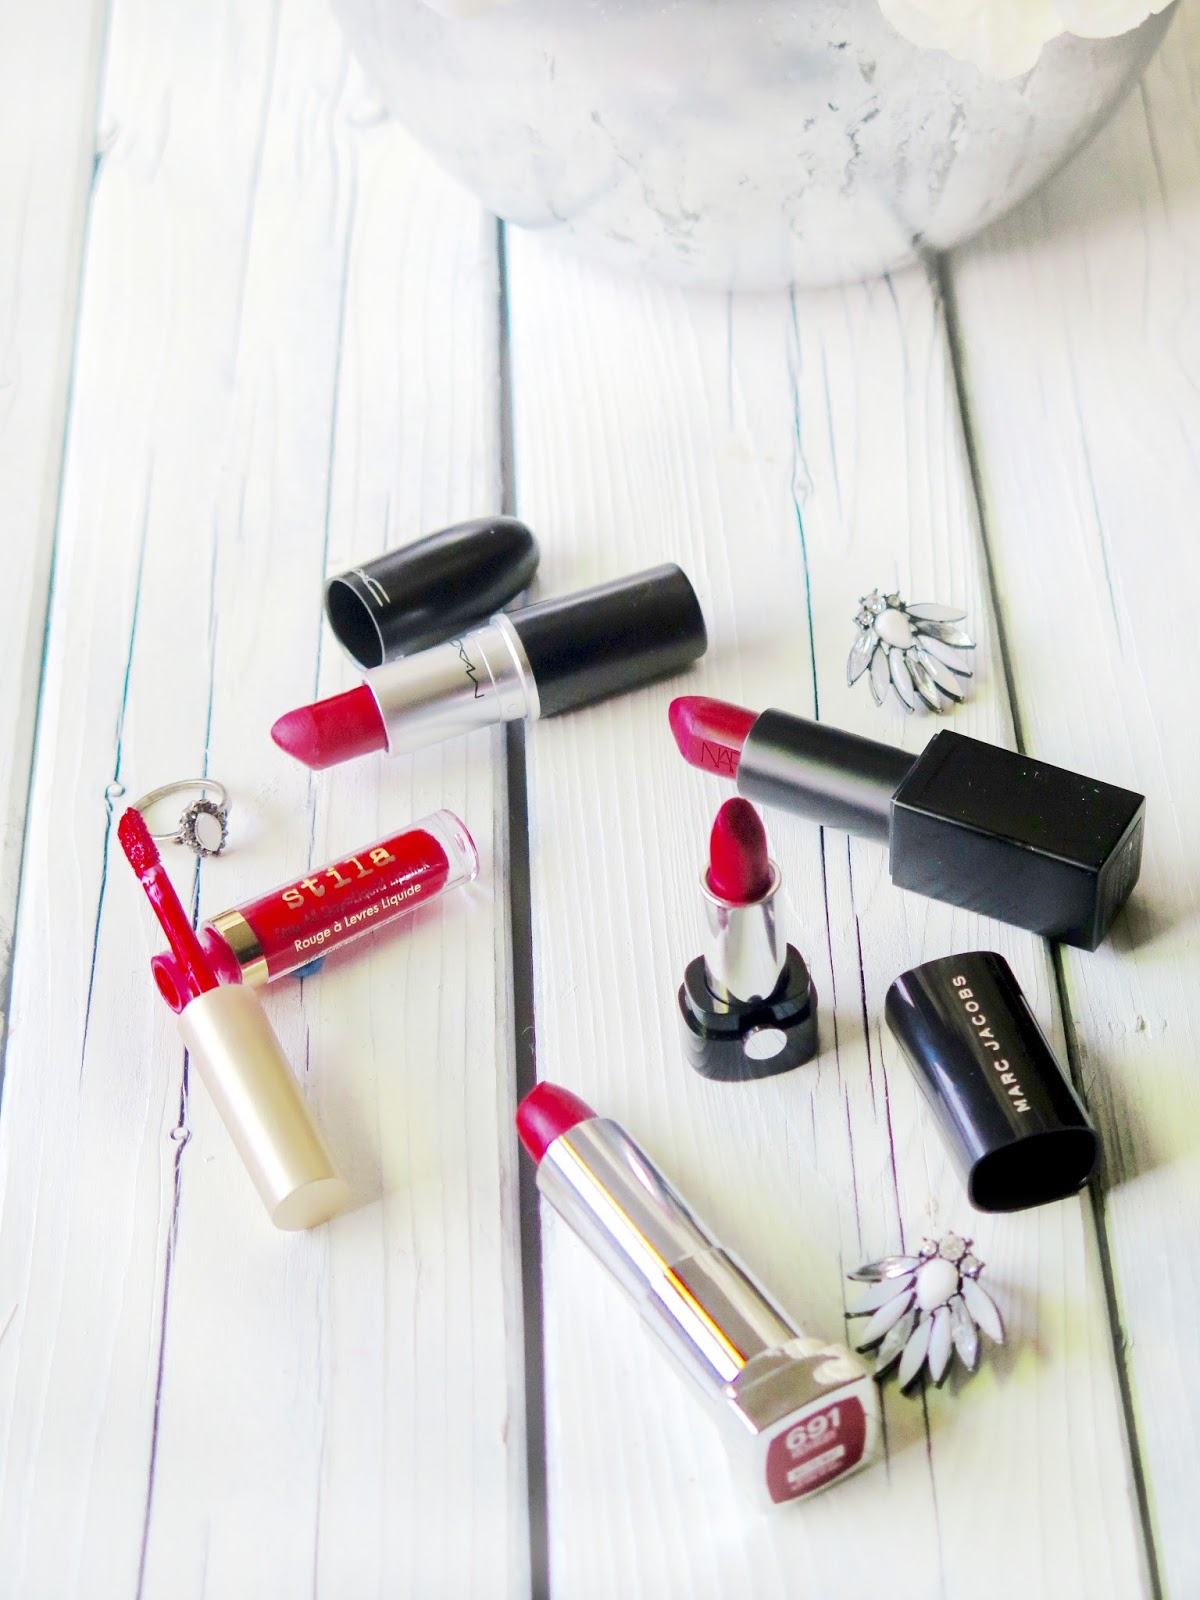 The Best Red Lipsticks For The Holiday Season - Bold Red Lips from Stila, NARS, MAC, Marc Jacobs and Maybelline